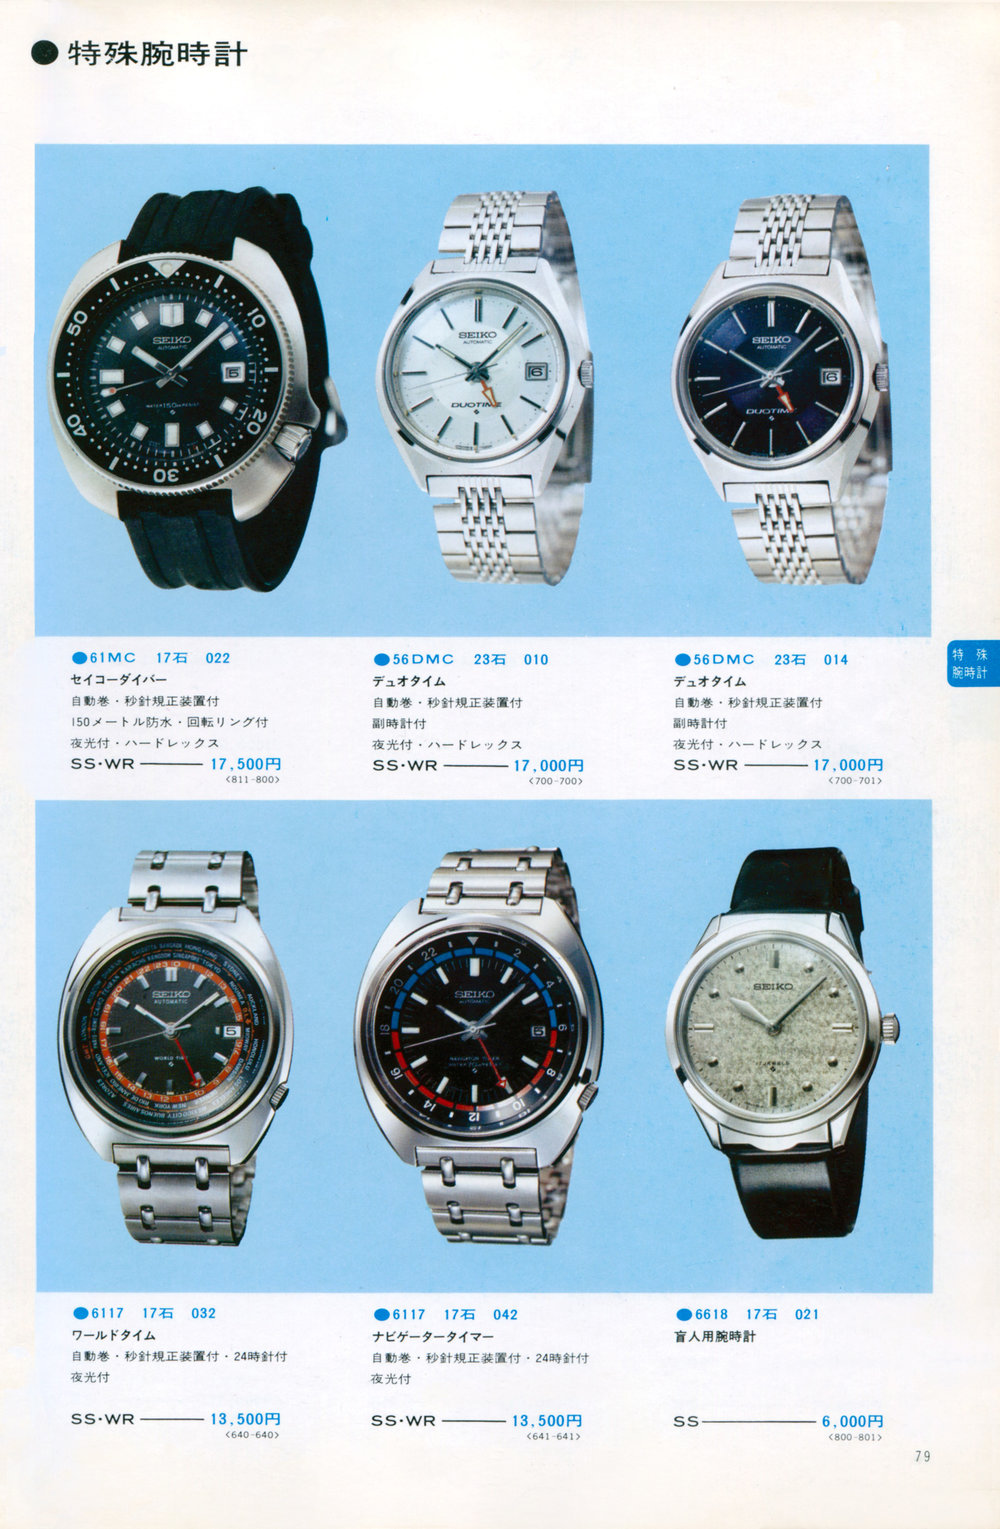 1974 Vol.1 Seiko JDM Catalog